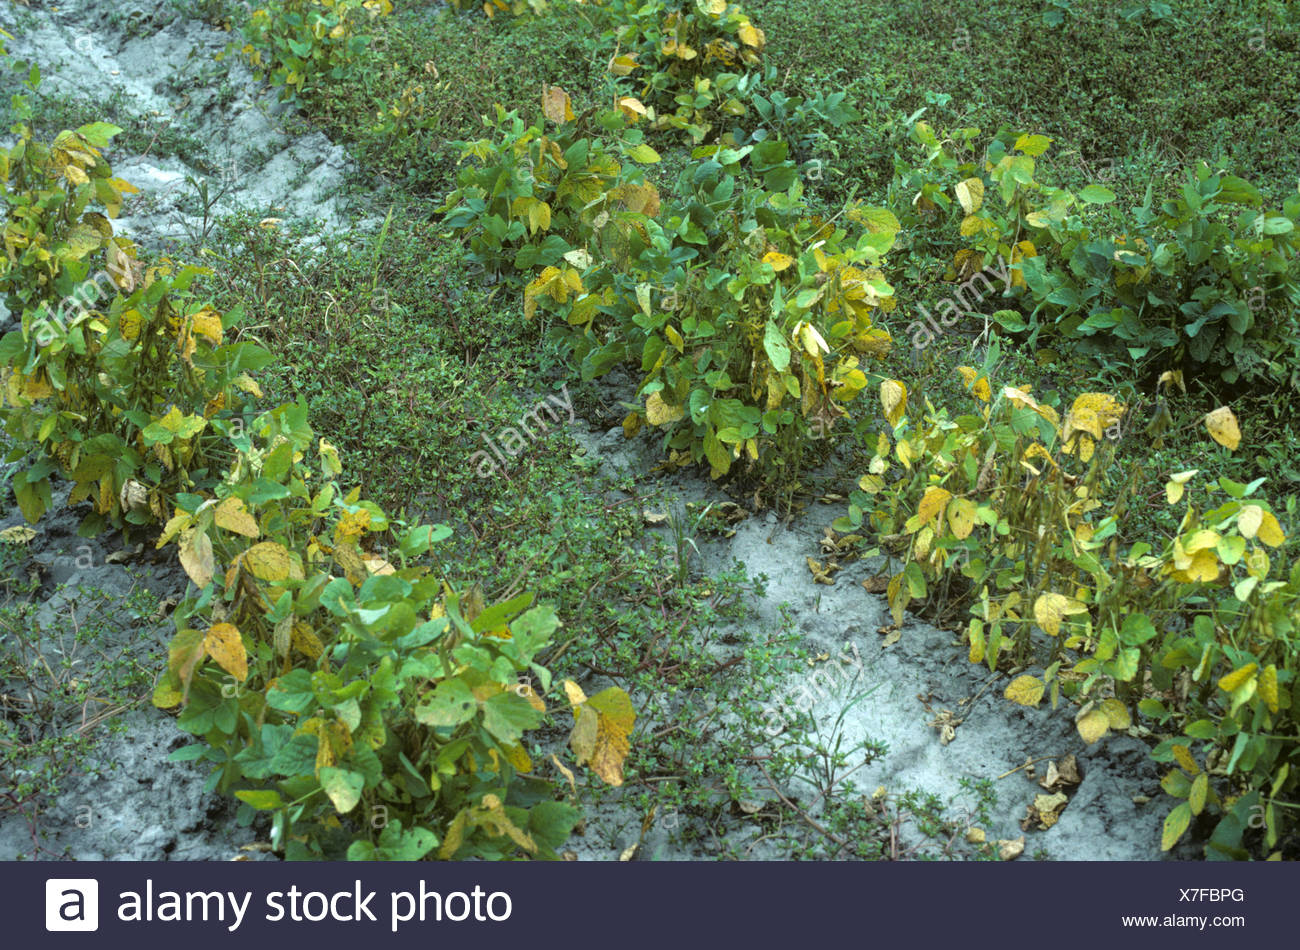 Common purslane Portulaca oleracea and other weeds flowering in maturing soya crop - Stock Image